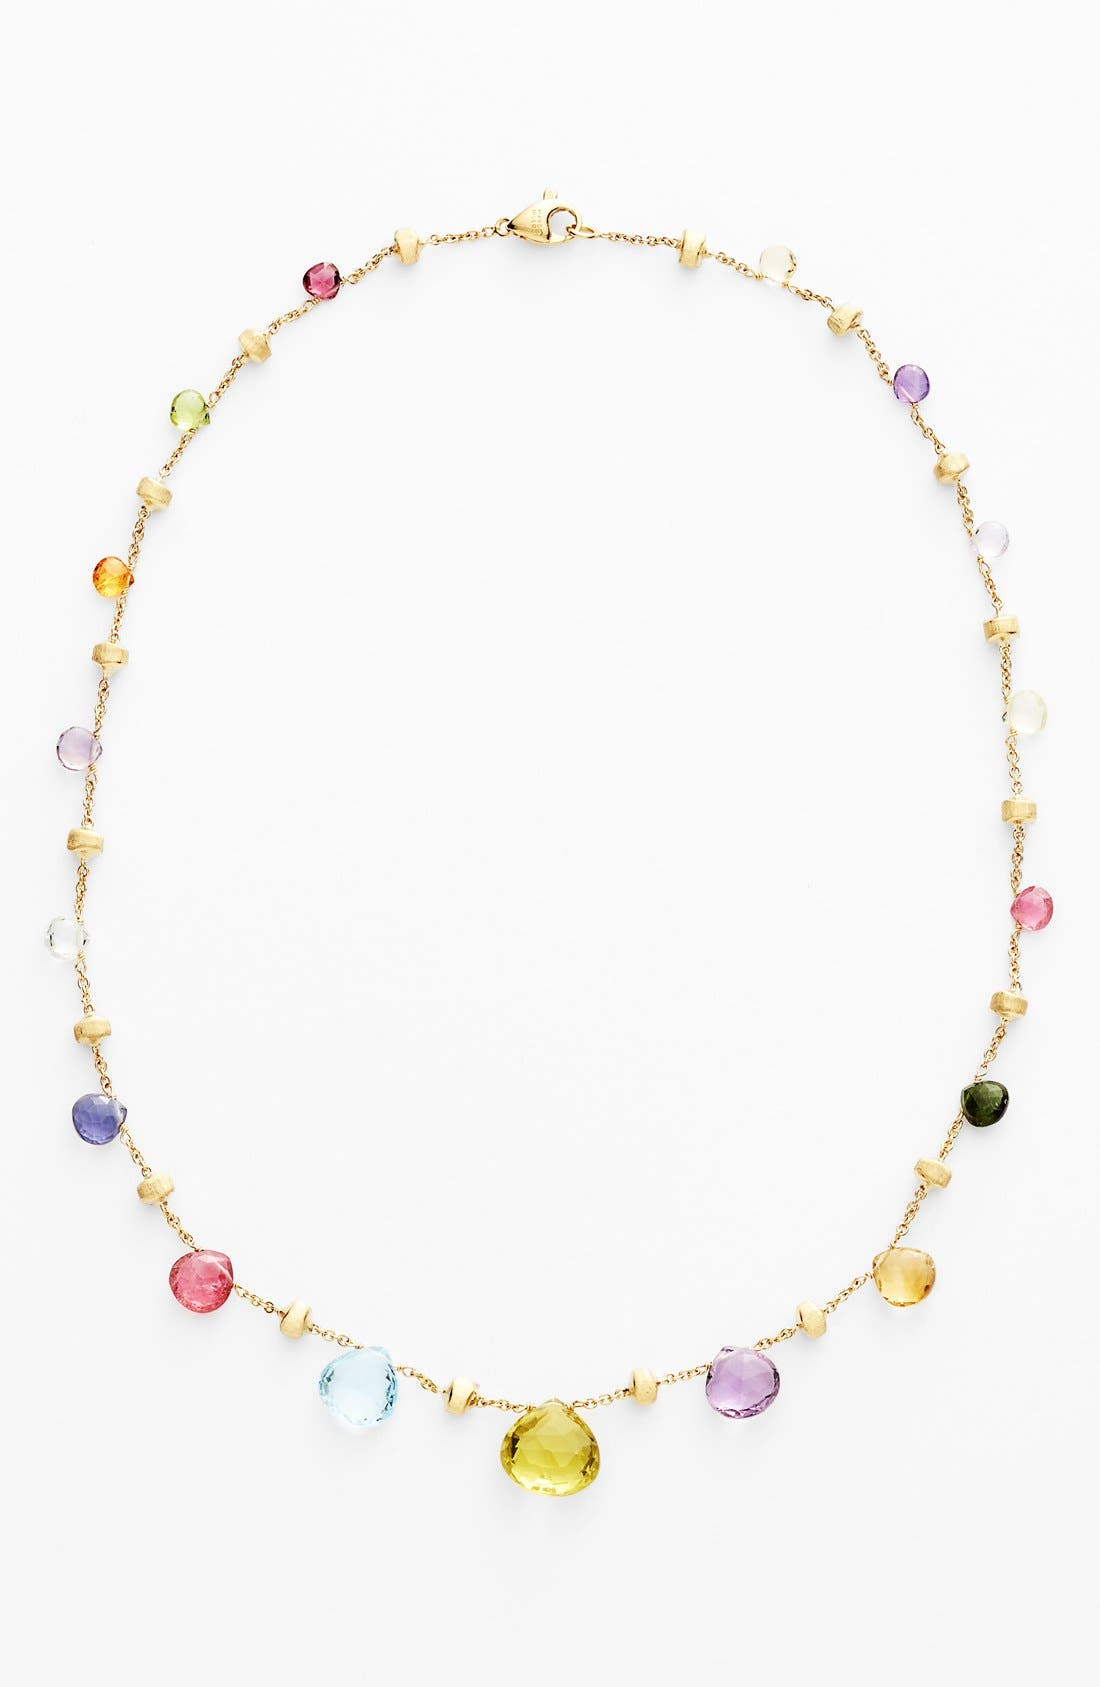 'Paradise' Collar Necklace,                             Alternate thumbnail 4, color,                             MULTI/ YELLOW GOLD